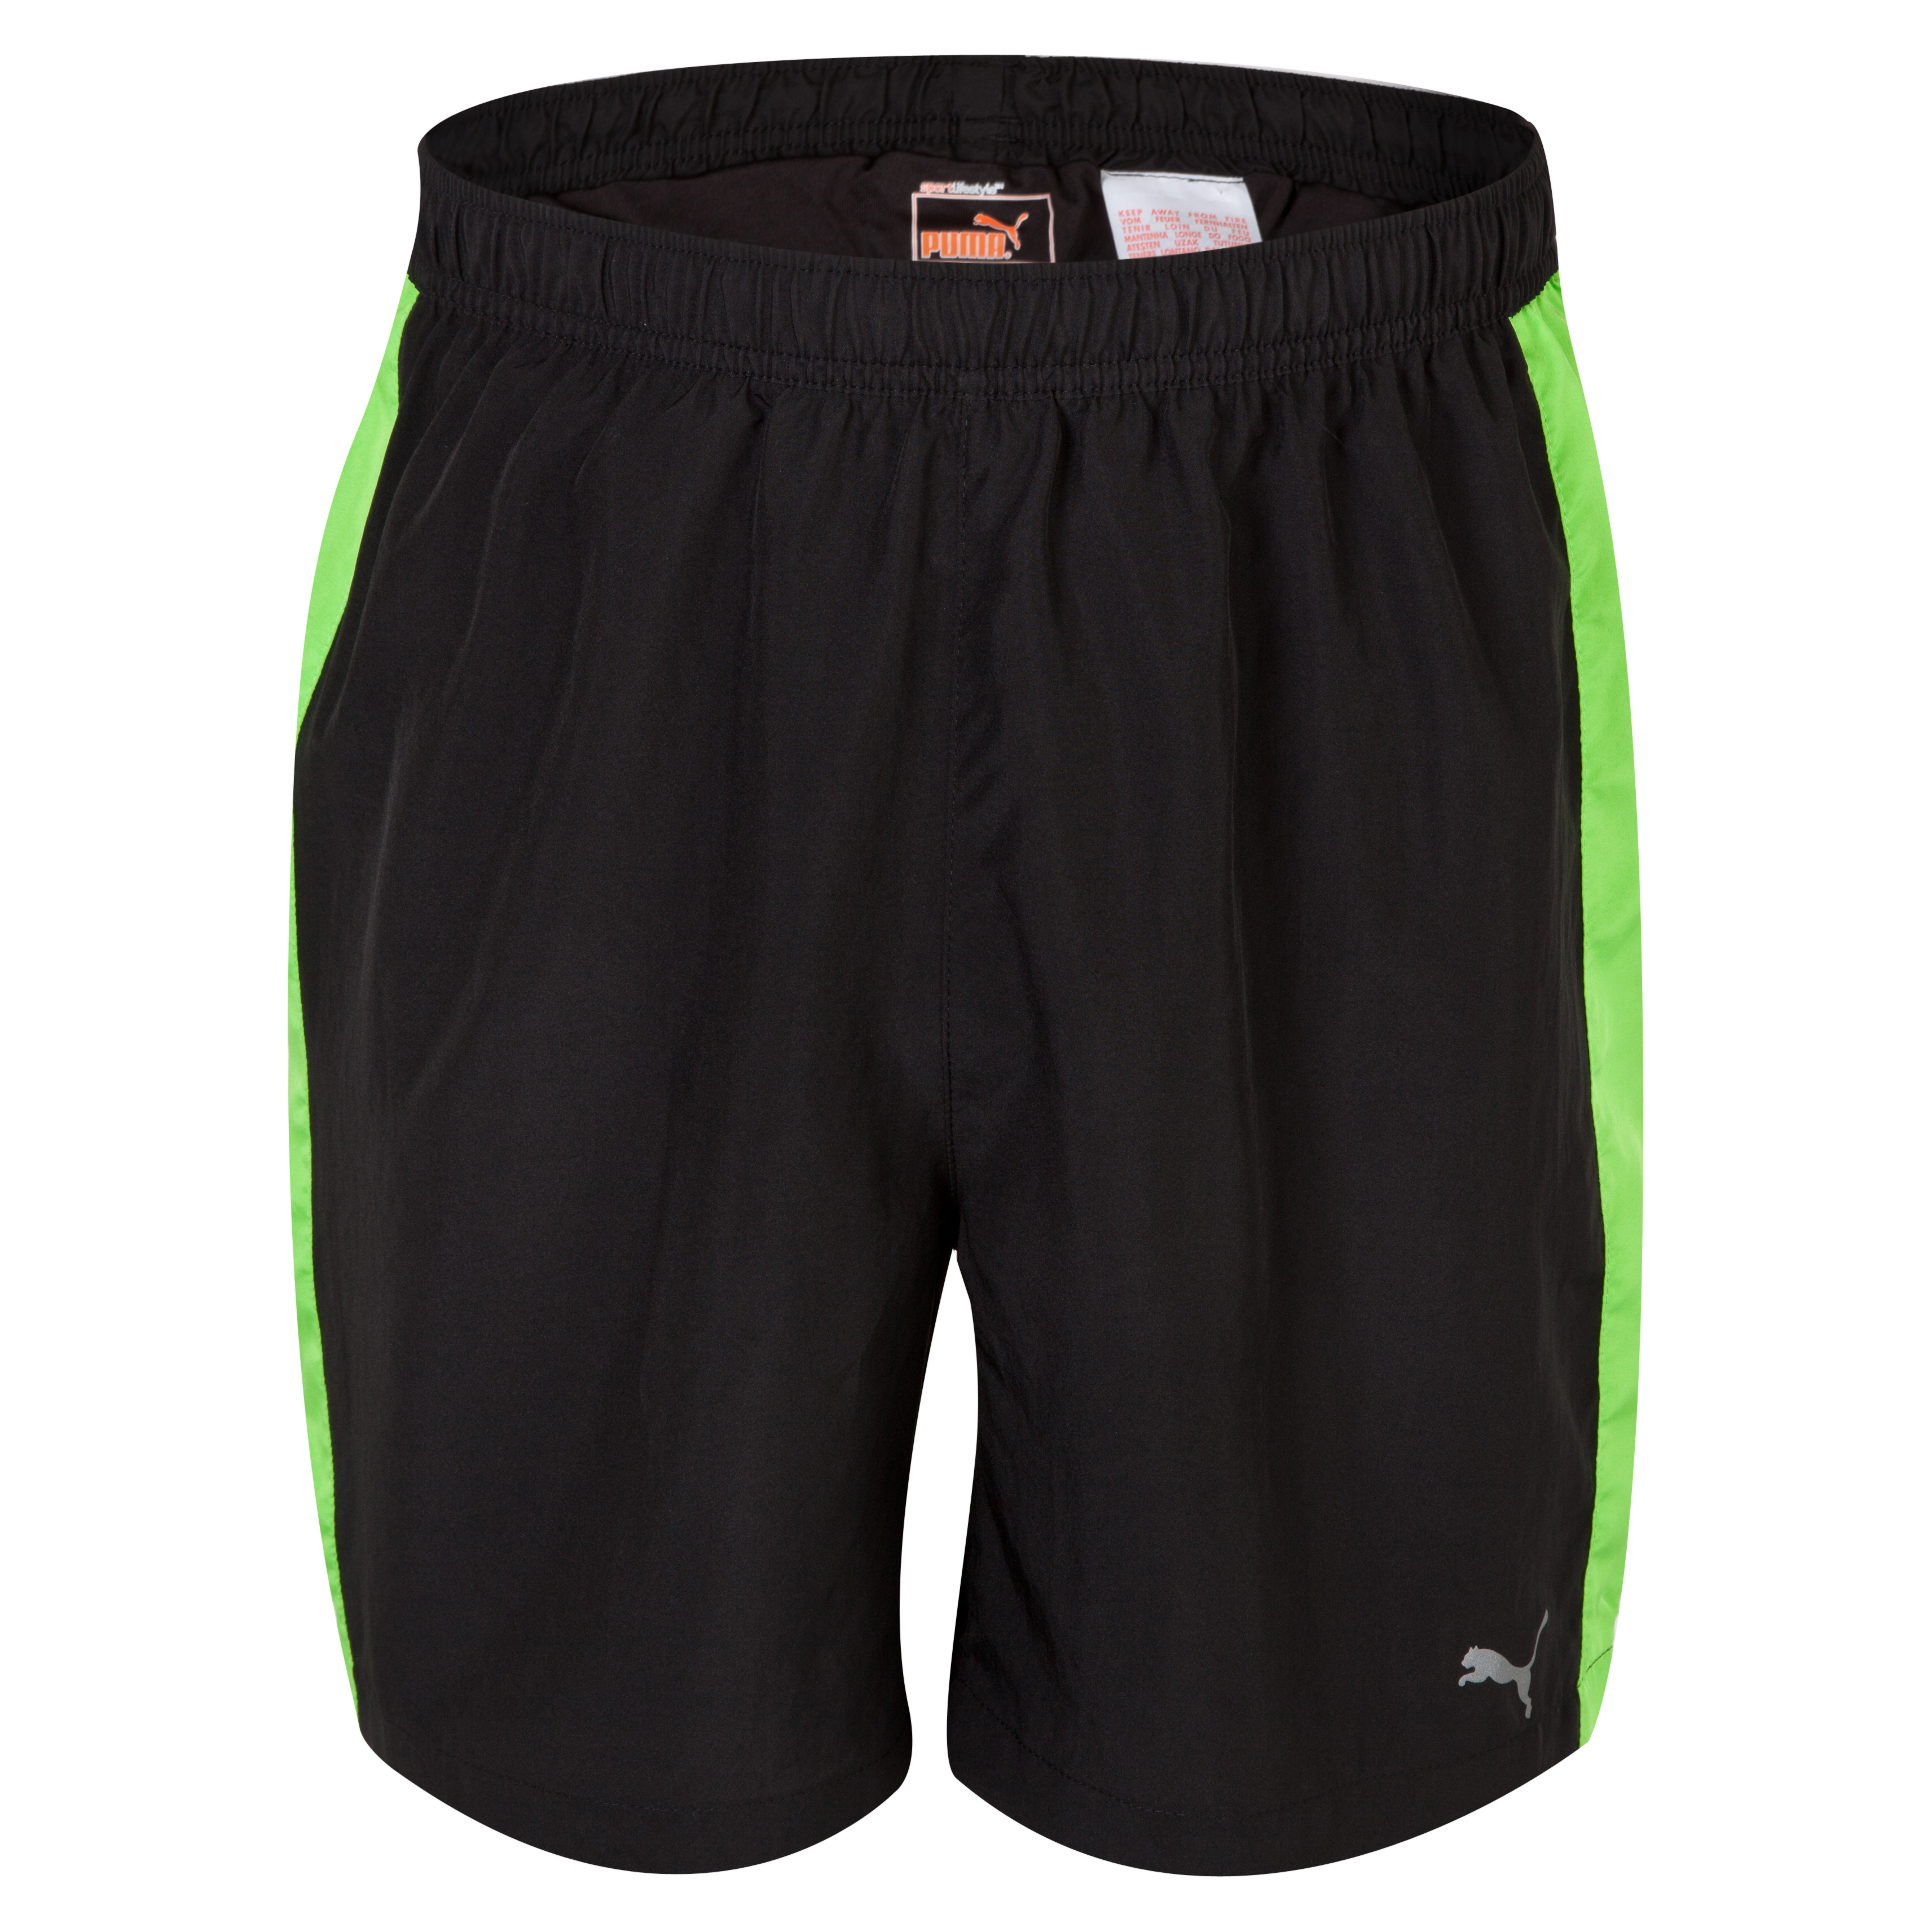 Puma PE 7inch Baggy Shorts - Black/Jasmine Green